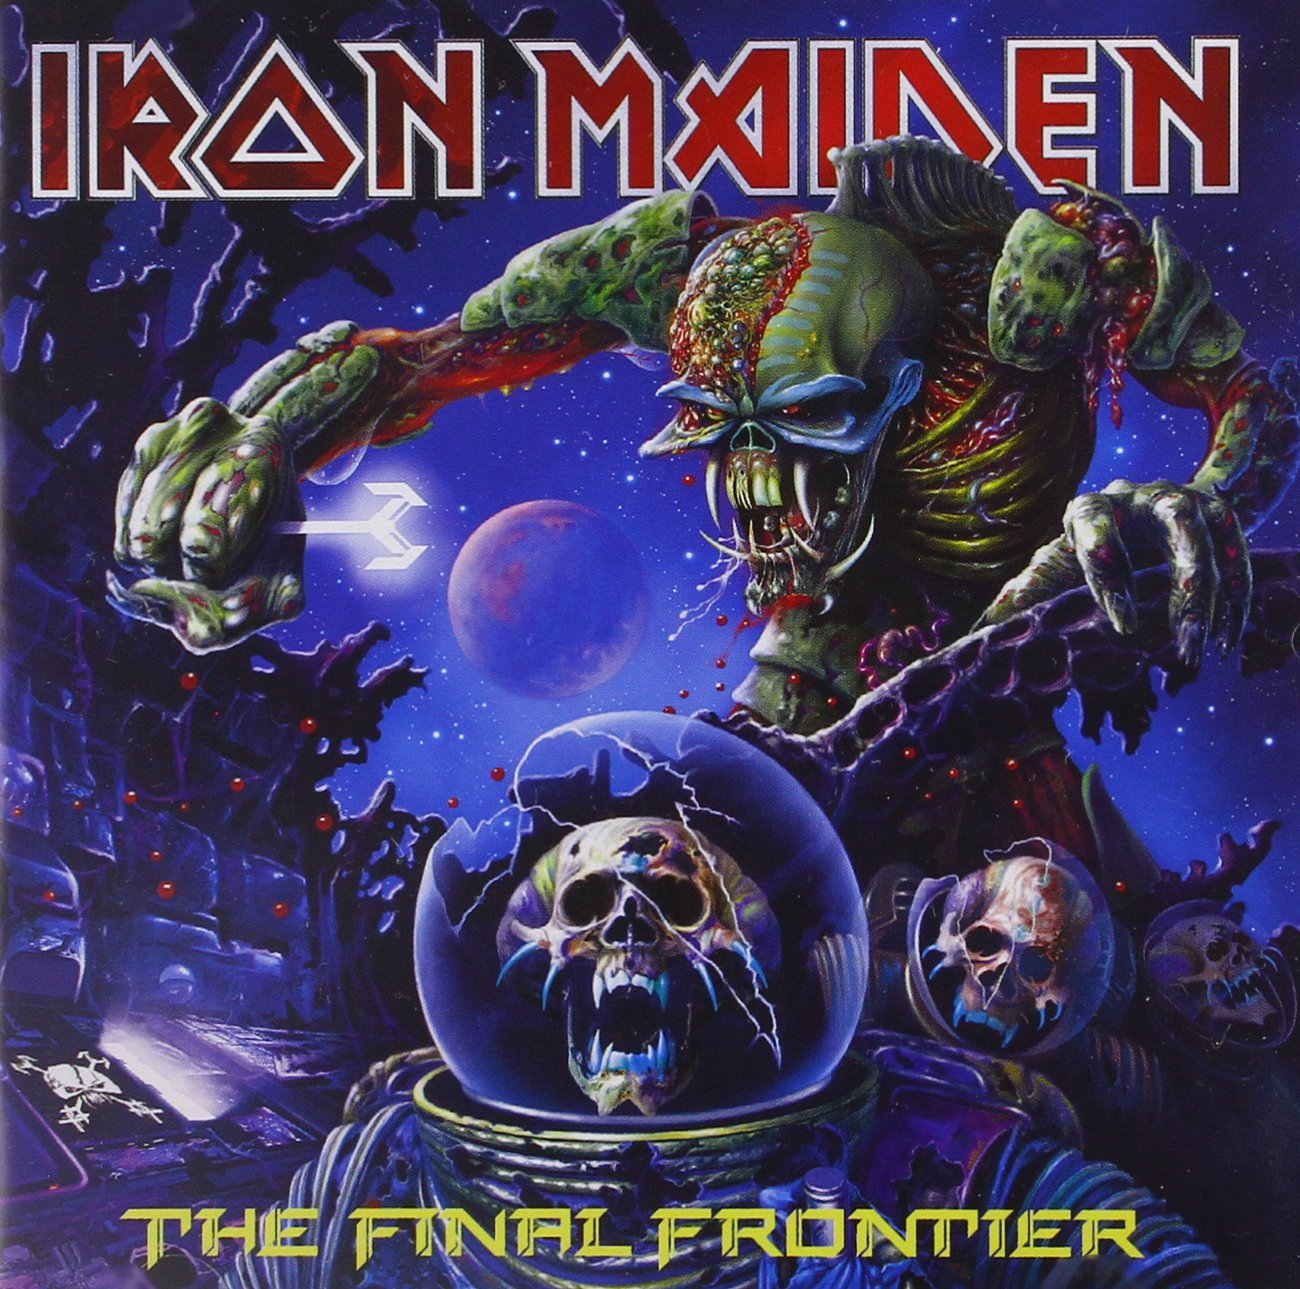 3aa566ea The Final Frontier by Iron Maiden: Amazon.co.uk: Music